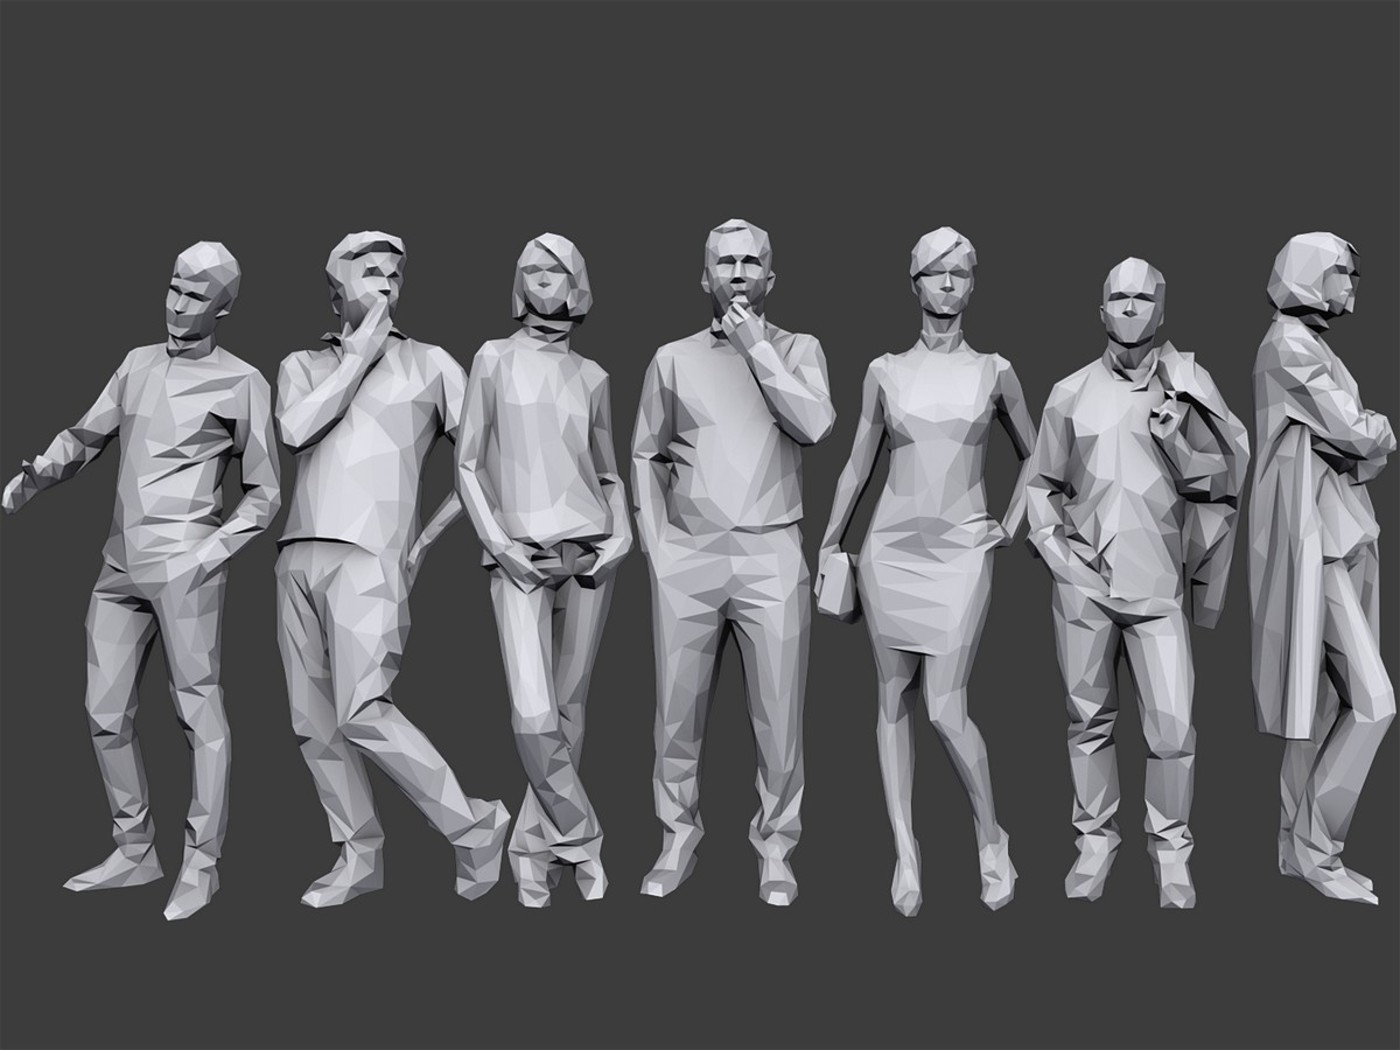 100+低多边形人物3D模型 Cubebrush – Complete Lowpoly People Pack Volume 1